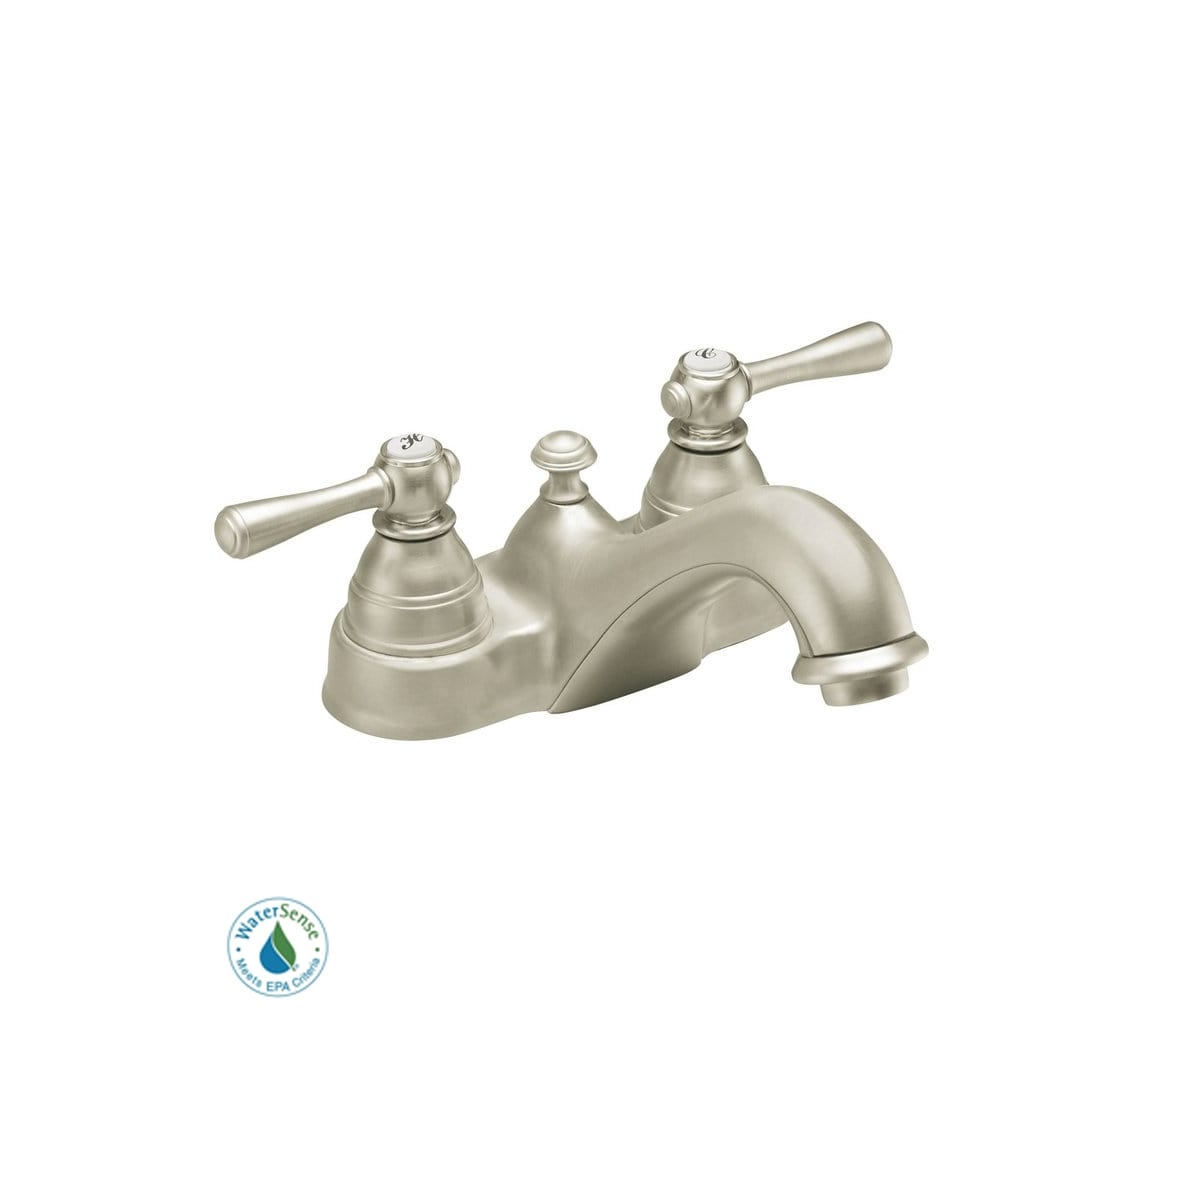 Handle Centerset Bathroom Faucet